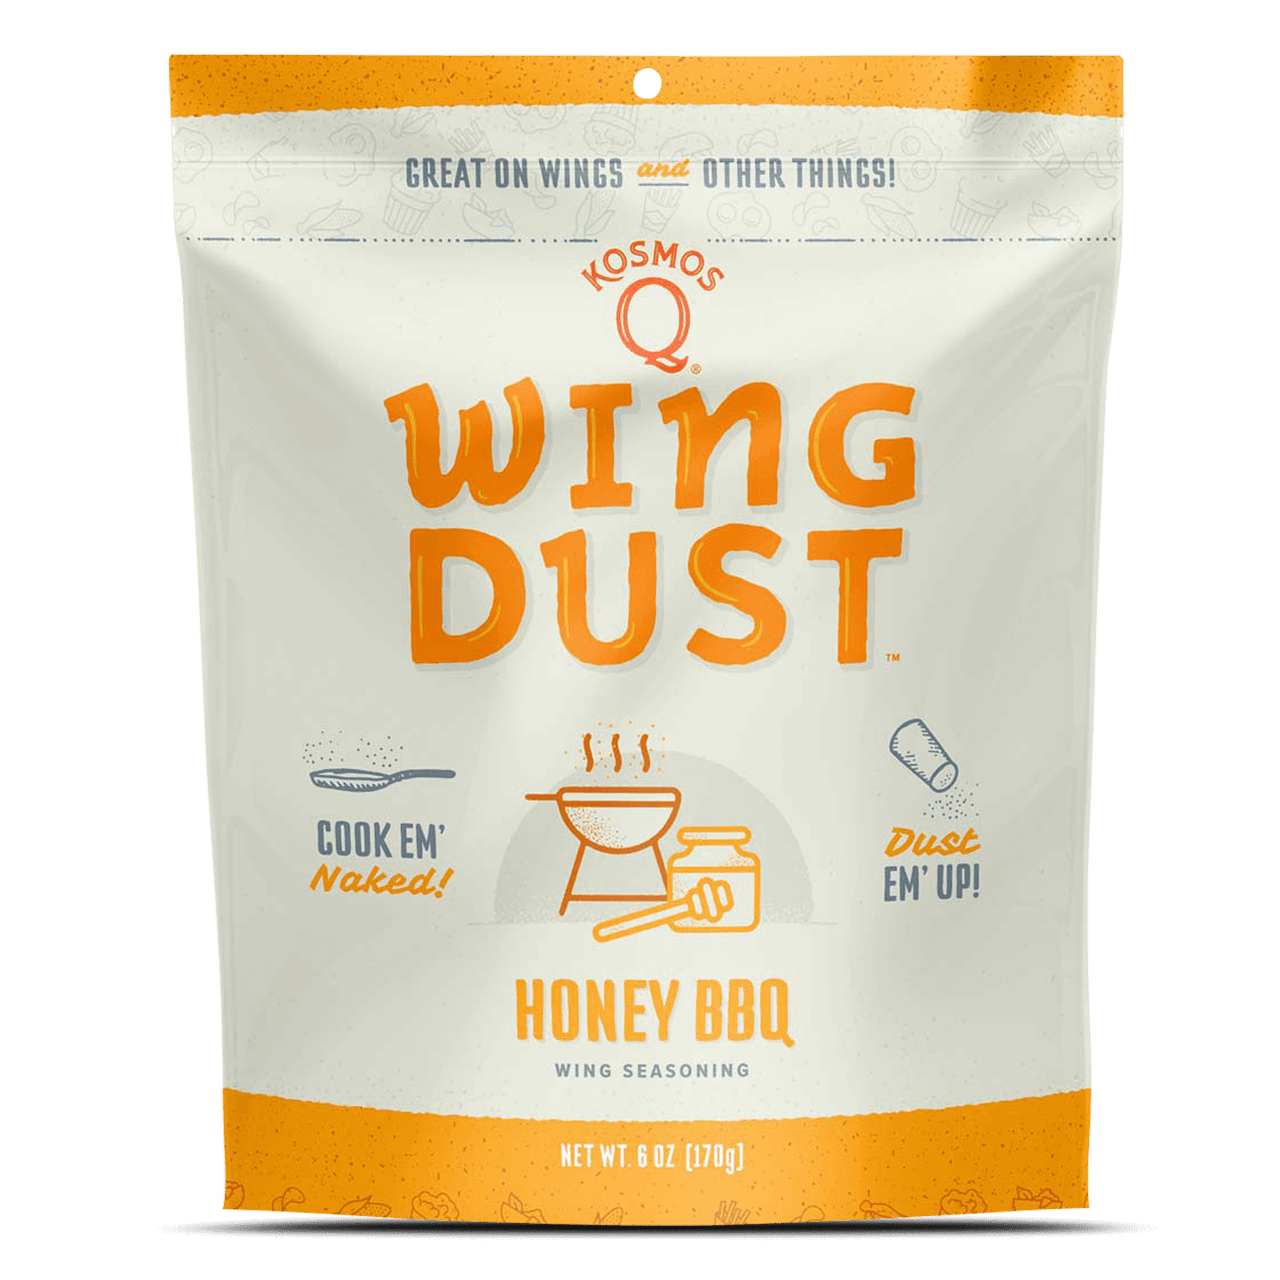 KosmosQ Barbecue Wing Dust Honey BBQ